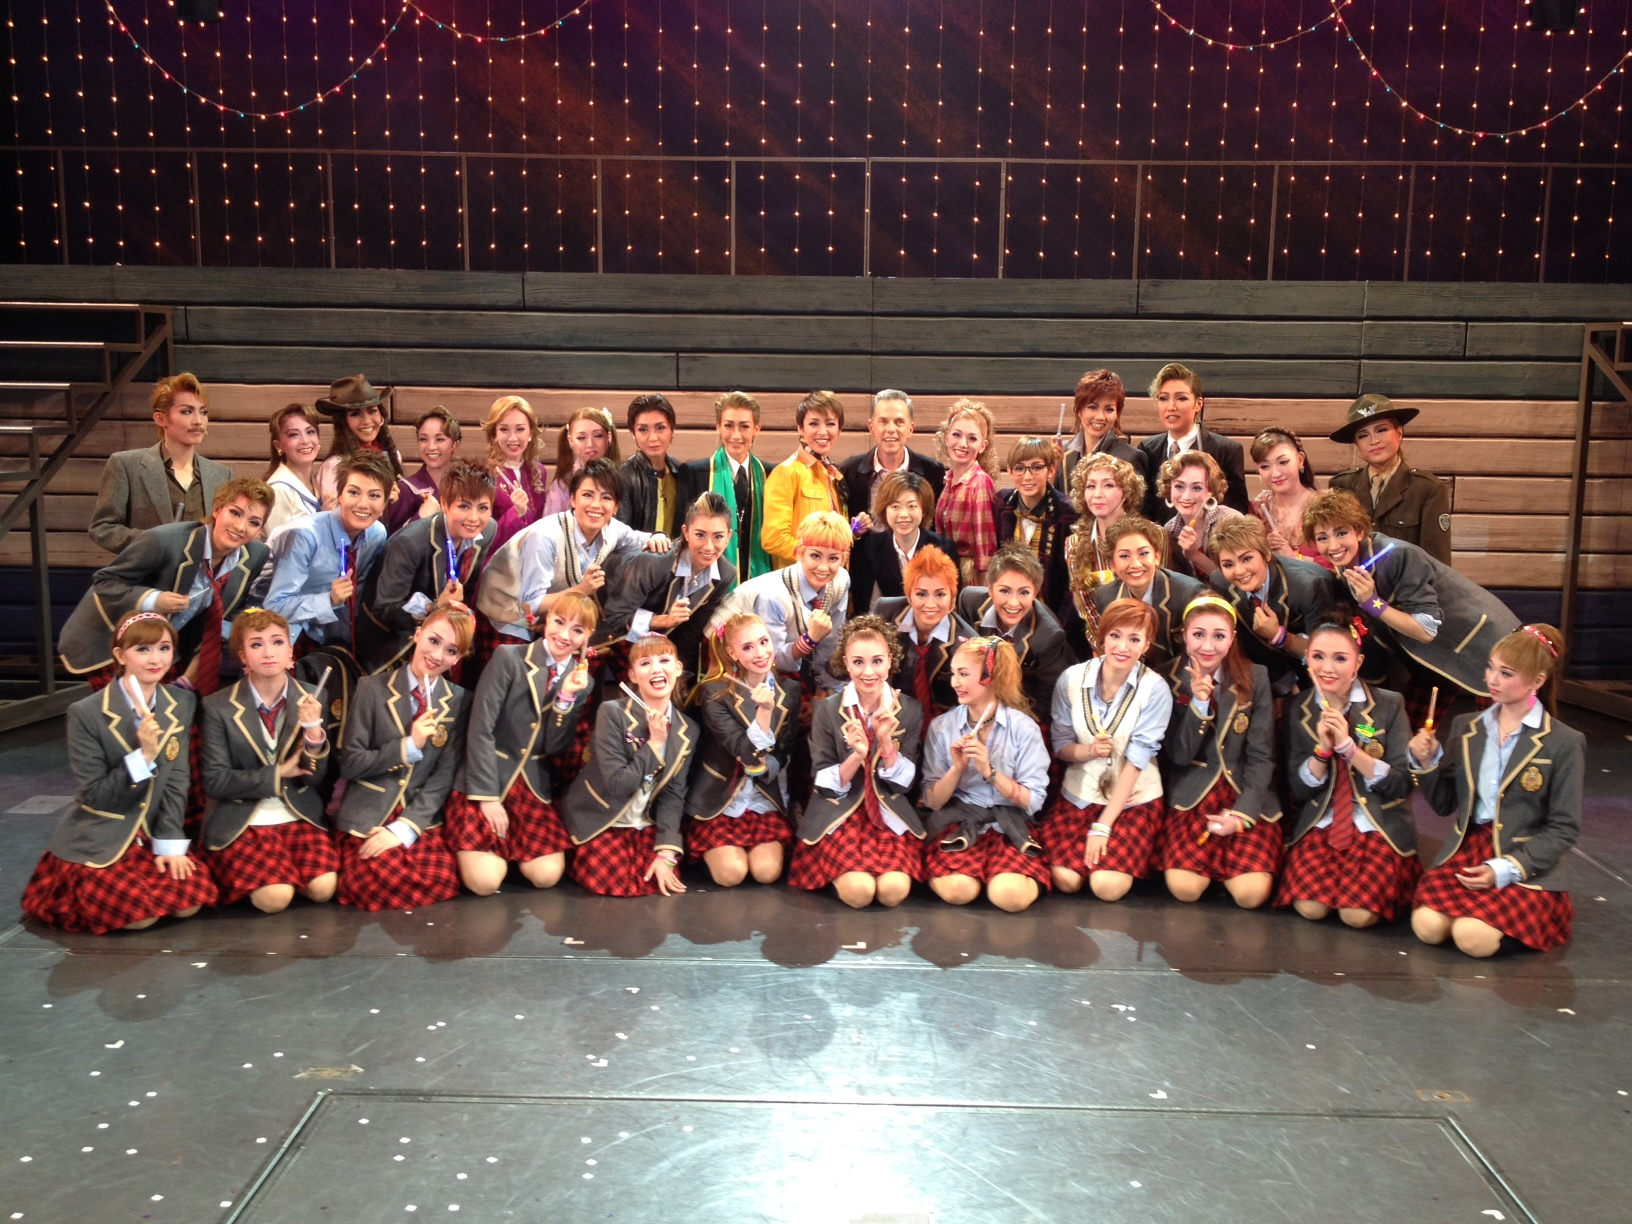 Takarazuka FOOTLOOSE cast